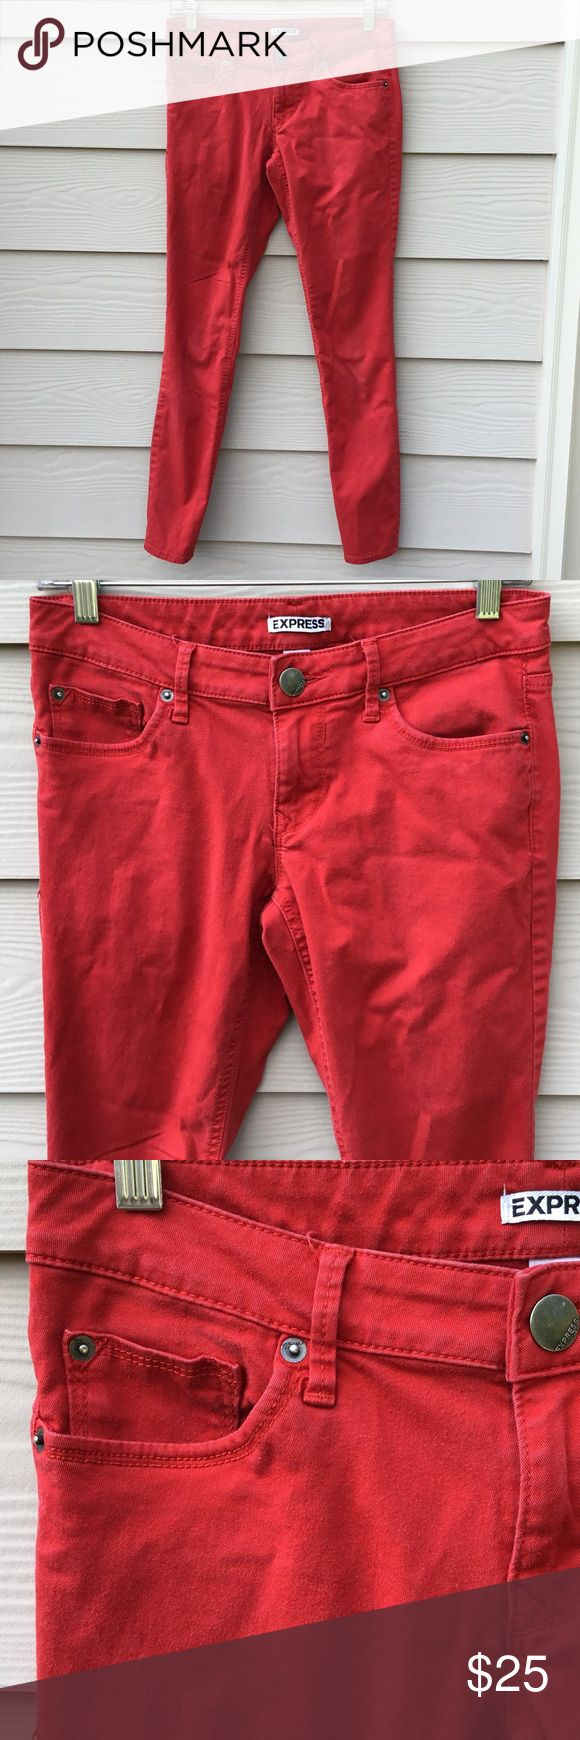 "EXPRESS red skinny pants size 6 98% cotton, measurements laying flat : total length 36"", Inseam 29"", waist 15"", Express Pants Skinny"